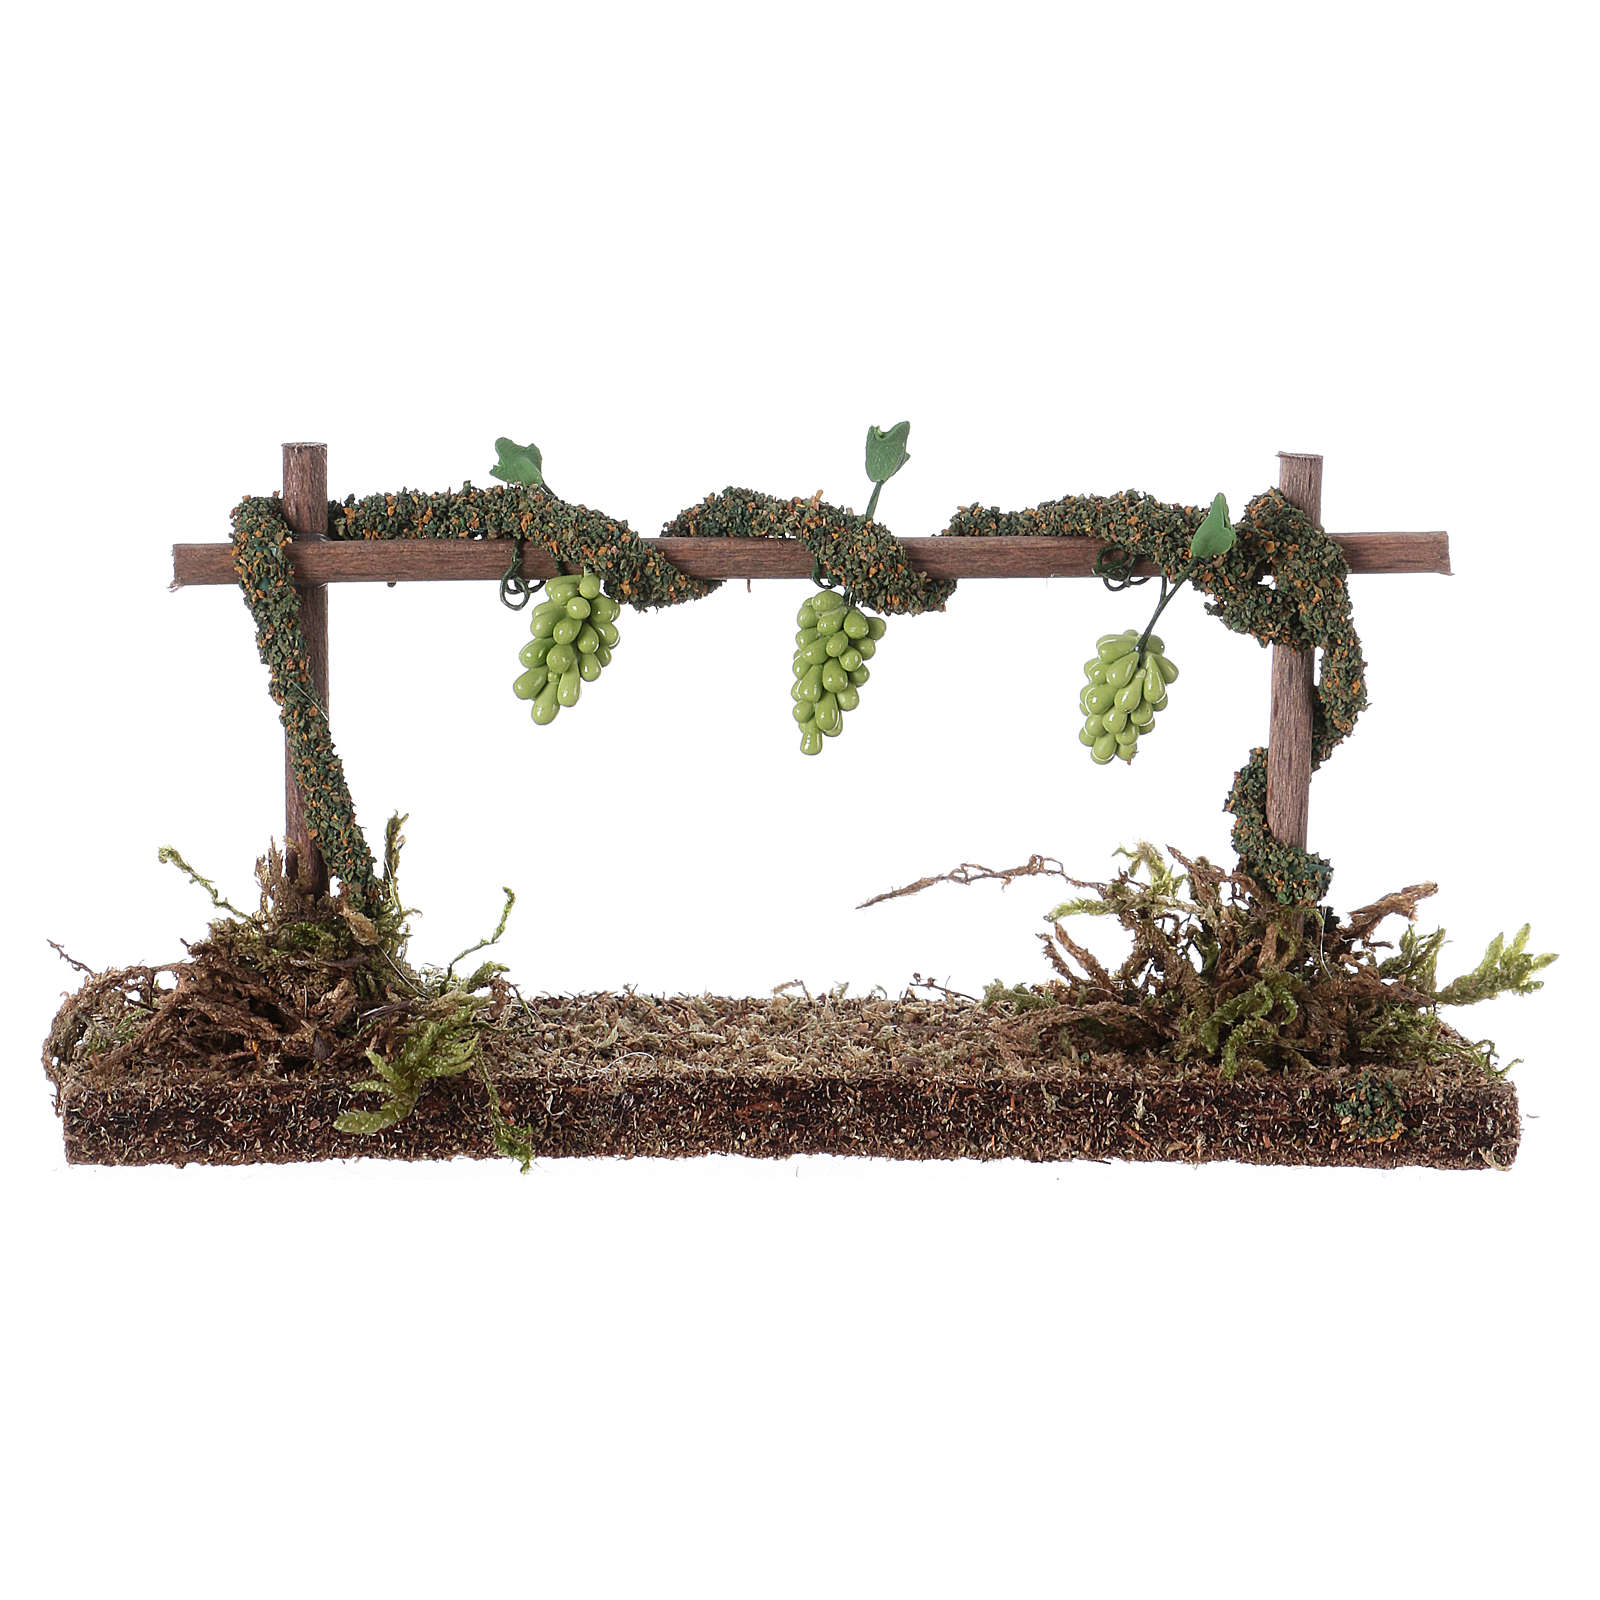 Vine for Nativity scene 5x15x5 cm 4